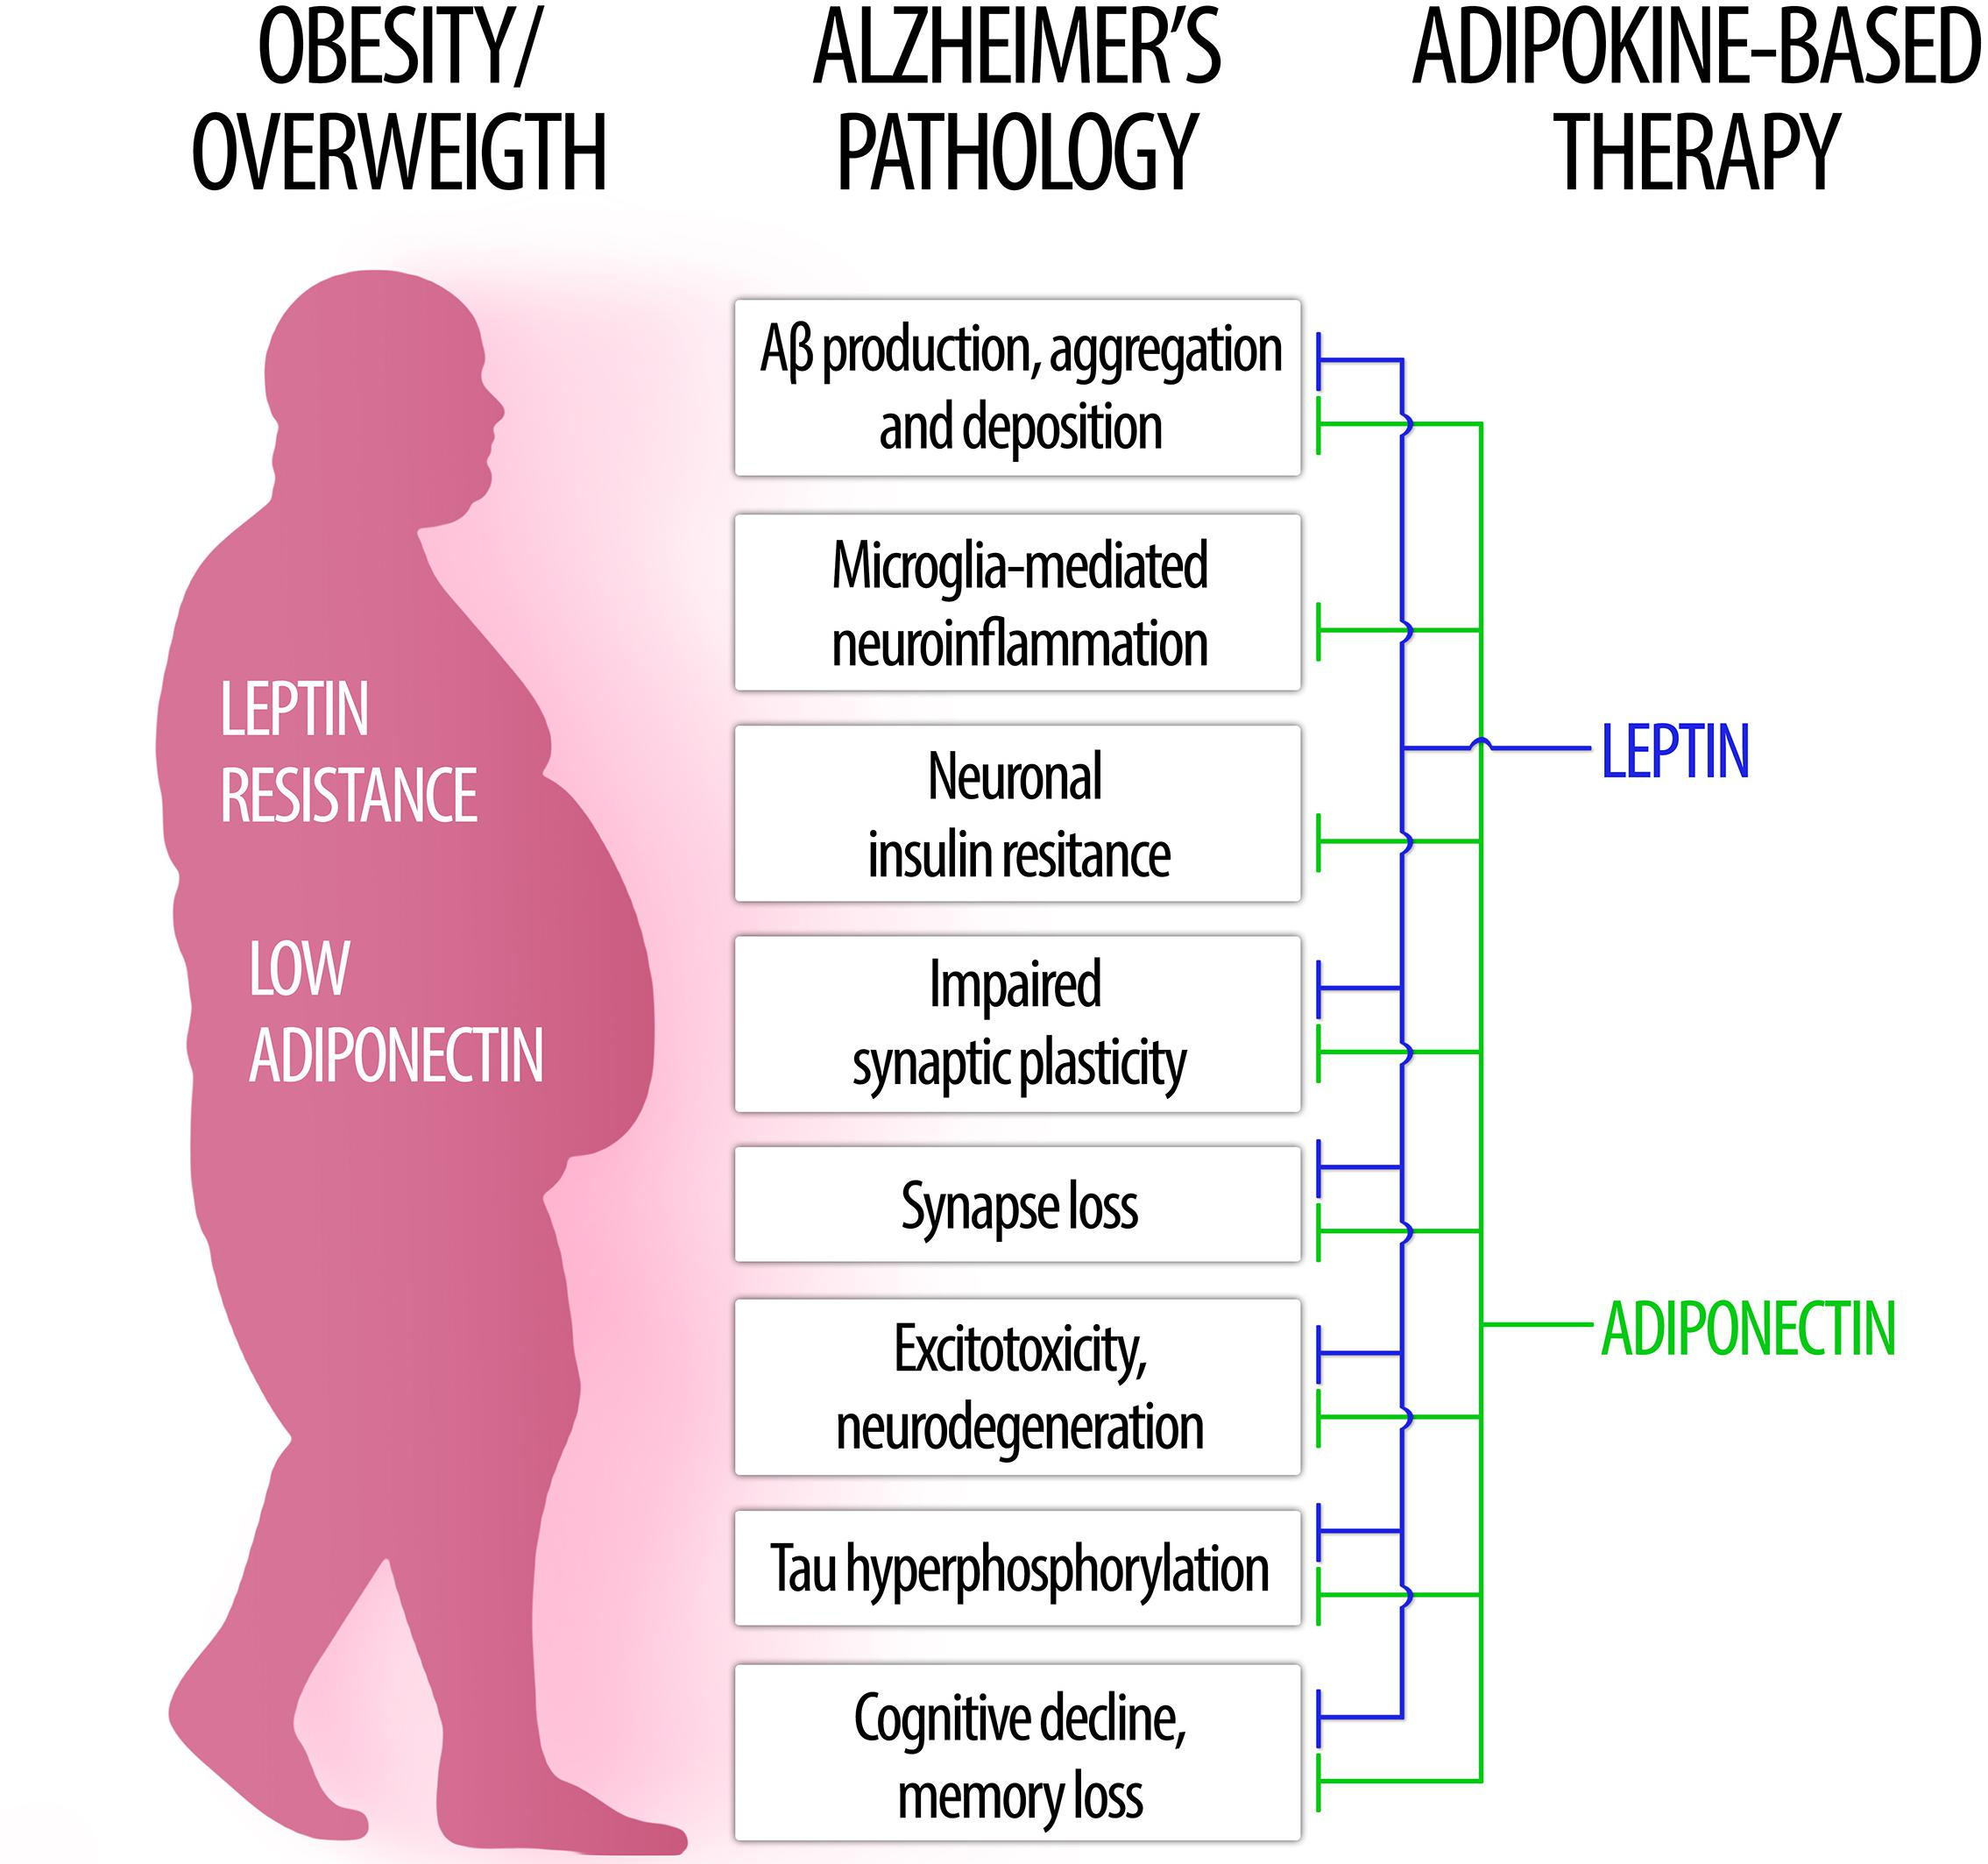 Ana Milojkovic frontiers | the role of leptin and adiponectin in obesity